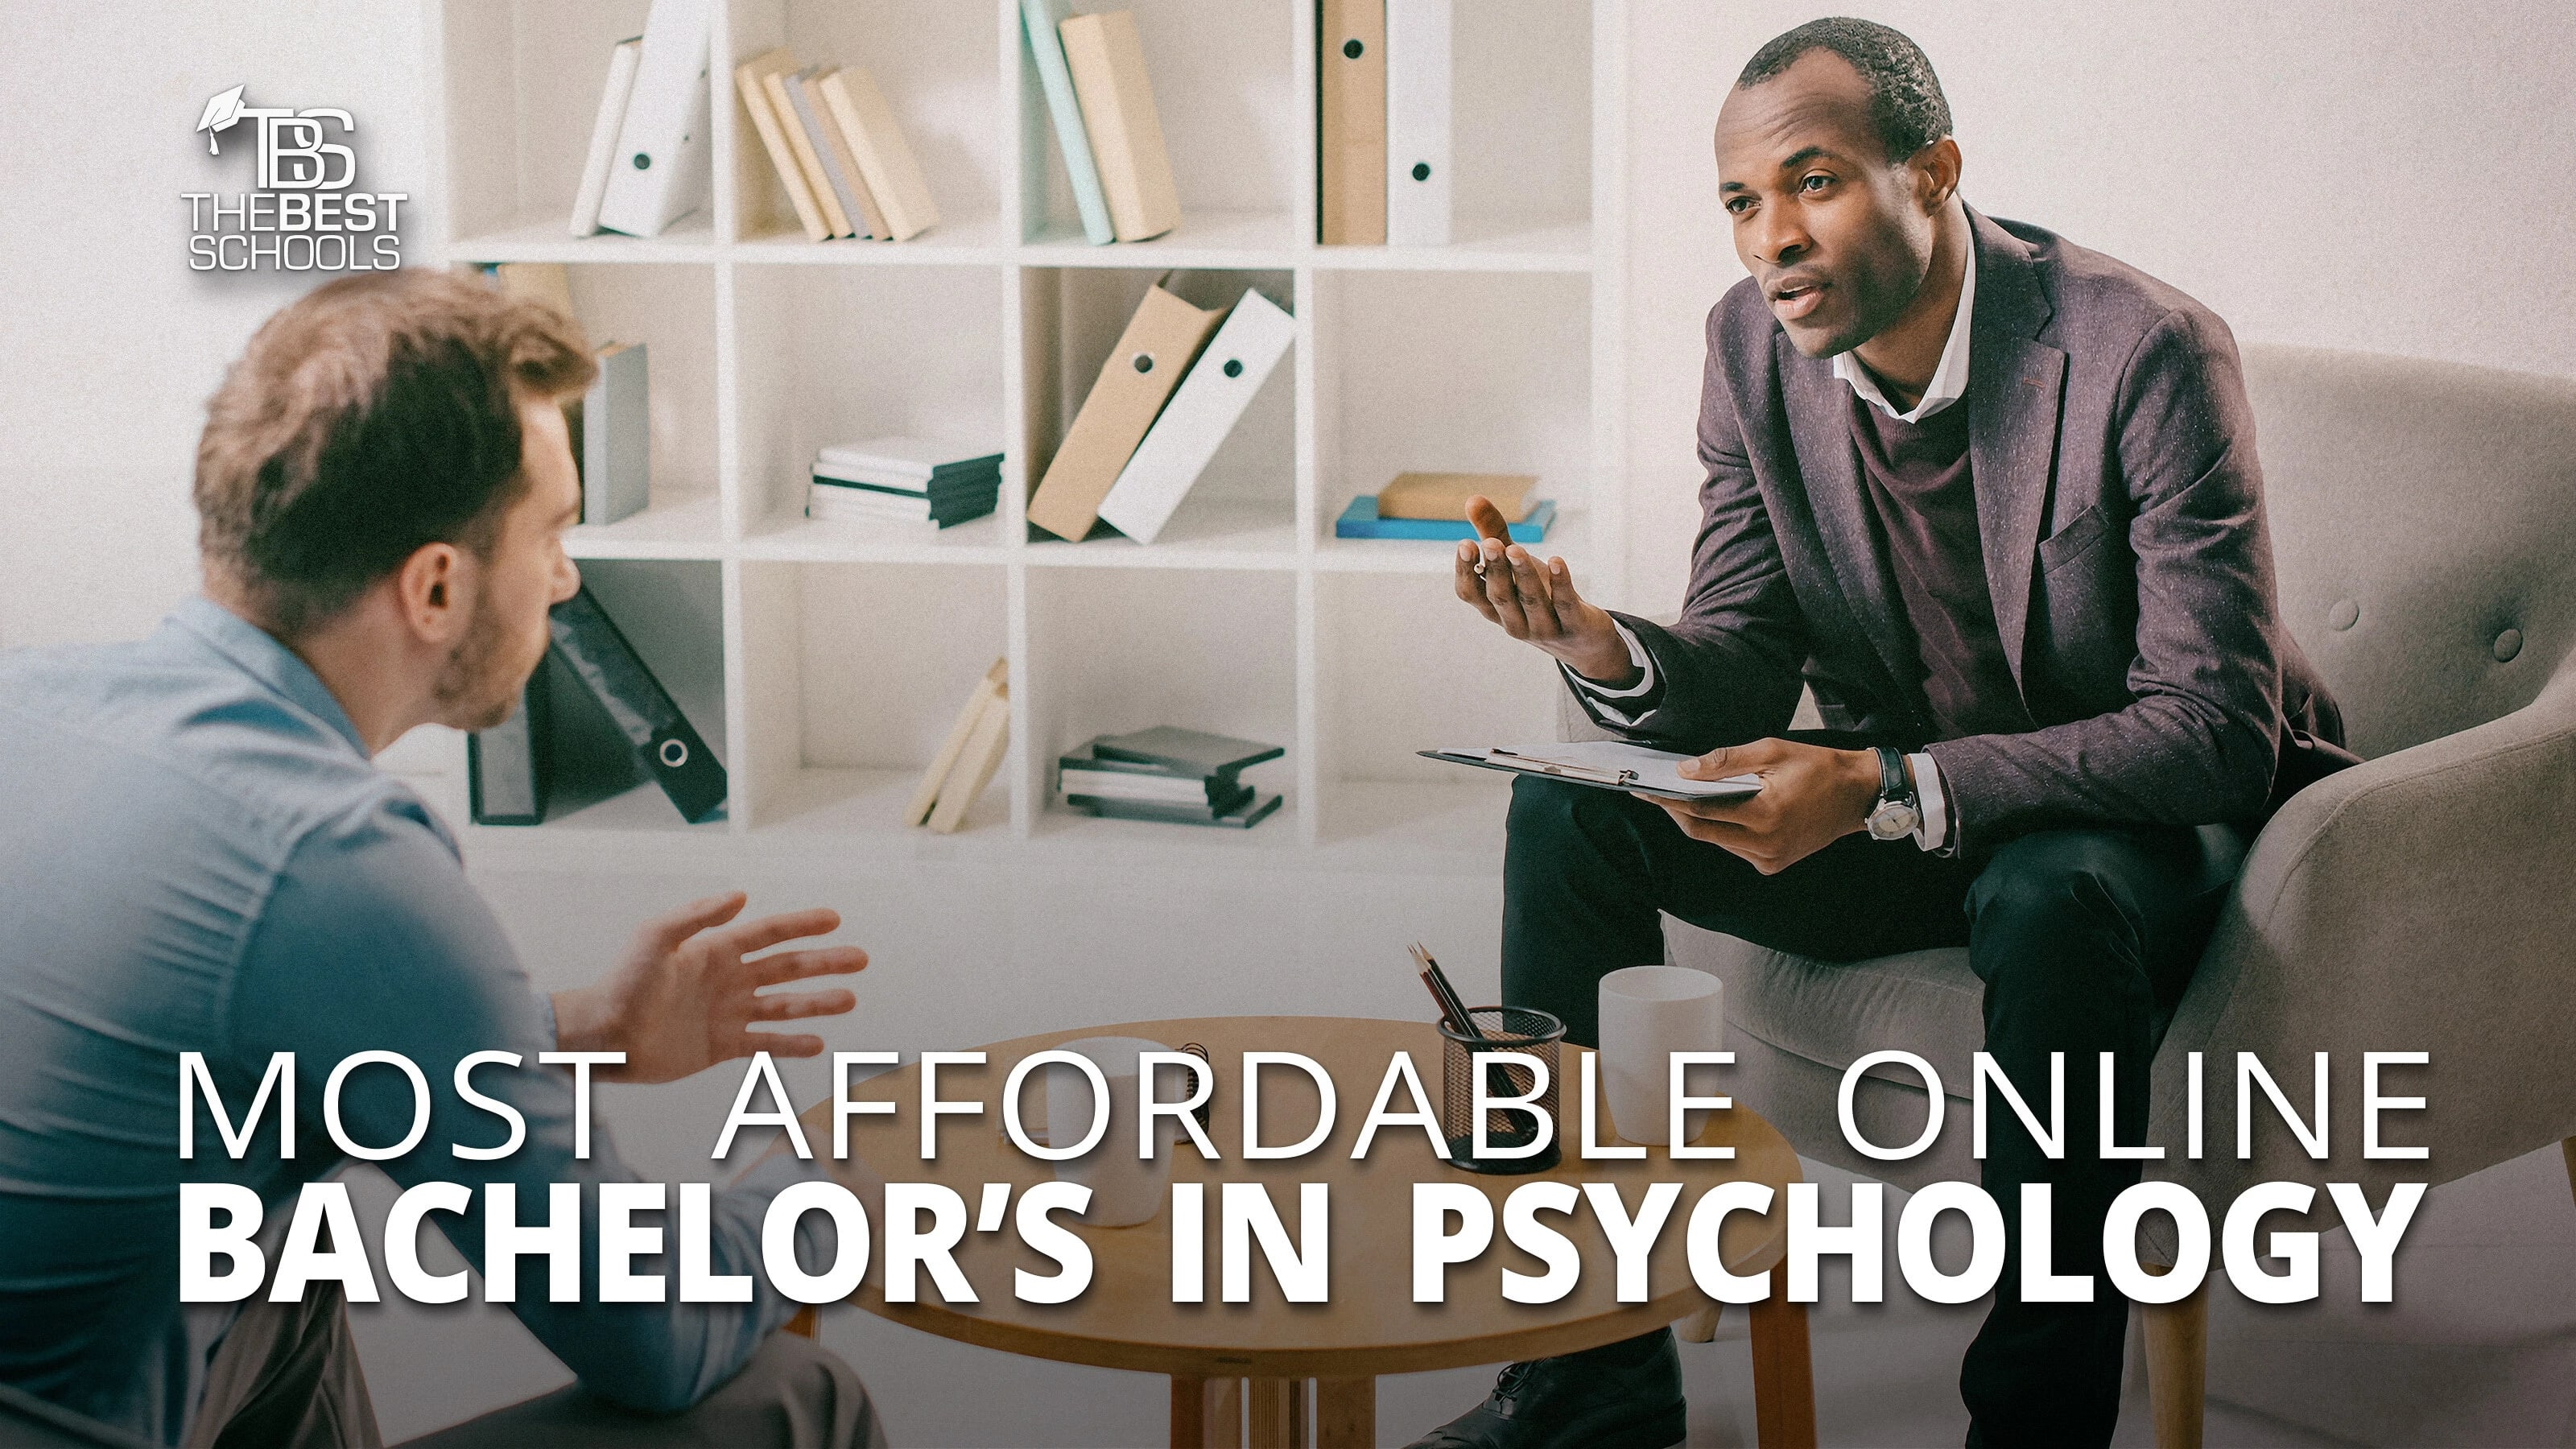 47 Most Affordable Online Bachelor's Degrees in Psychology